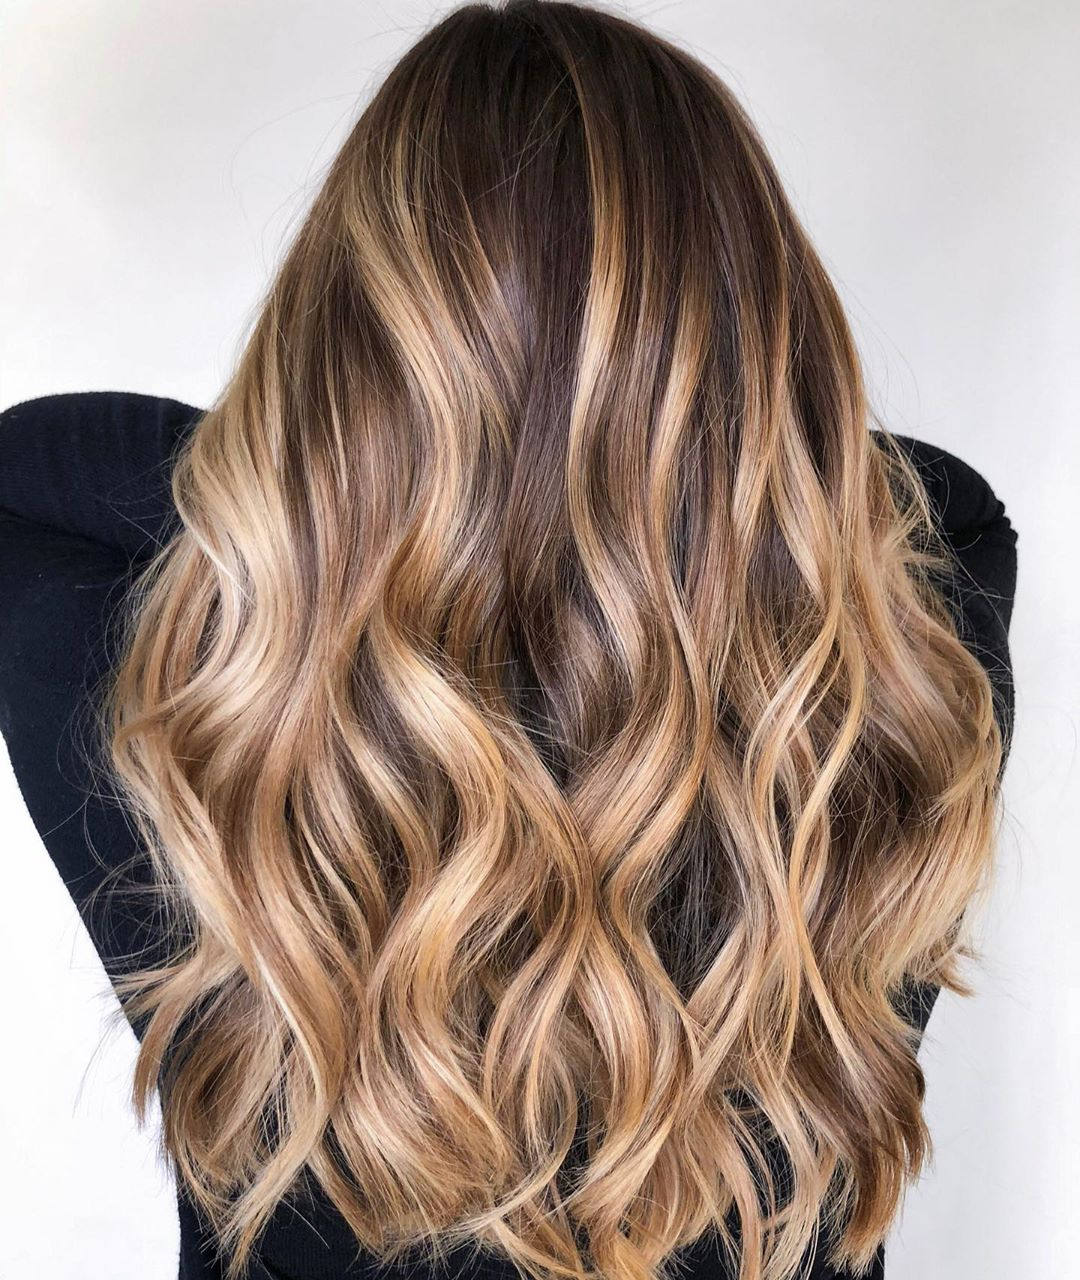 Long Honey Bronde Balayage Hair